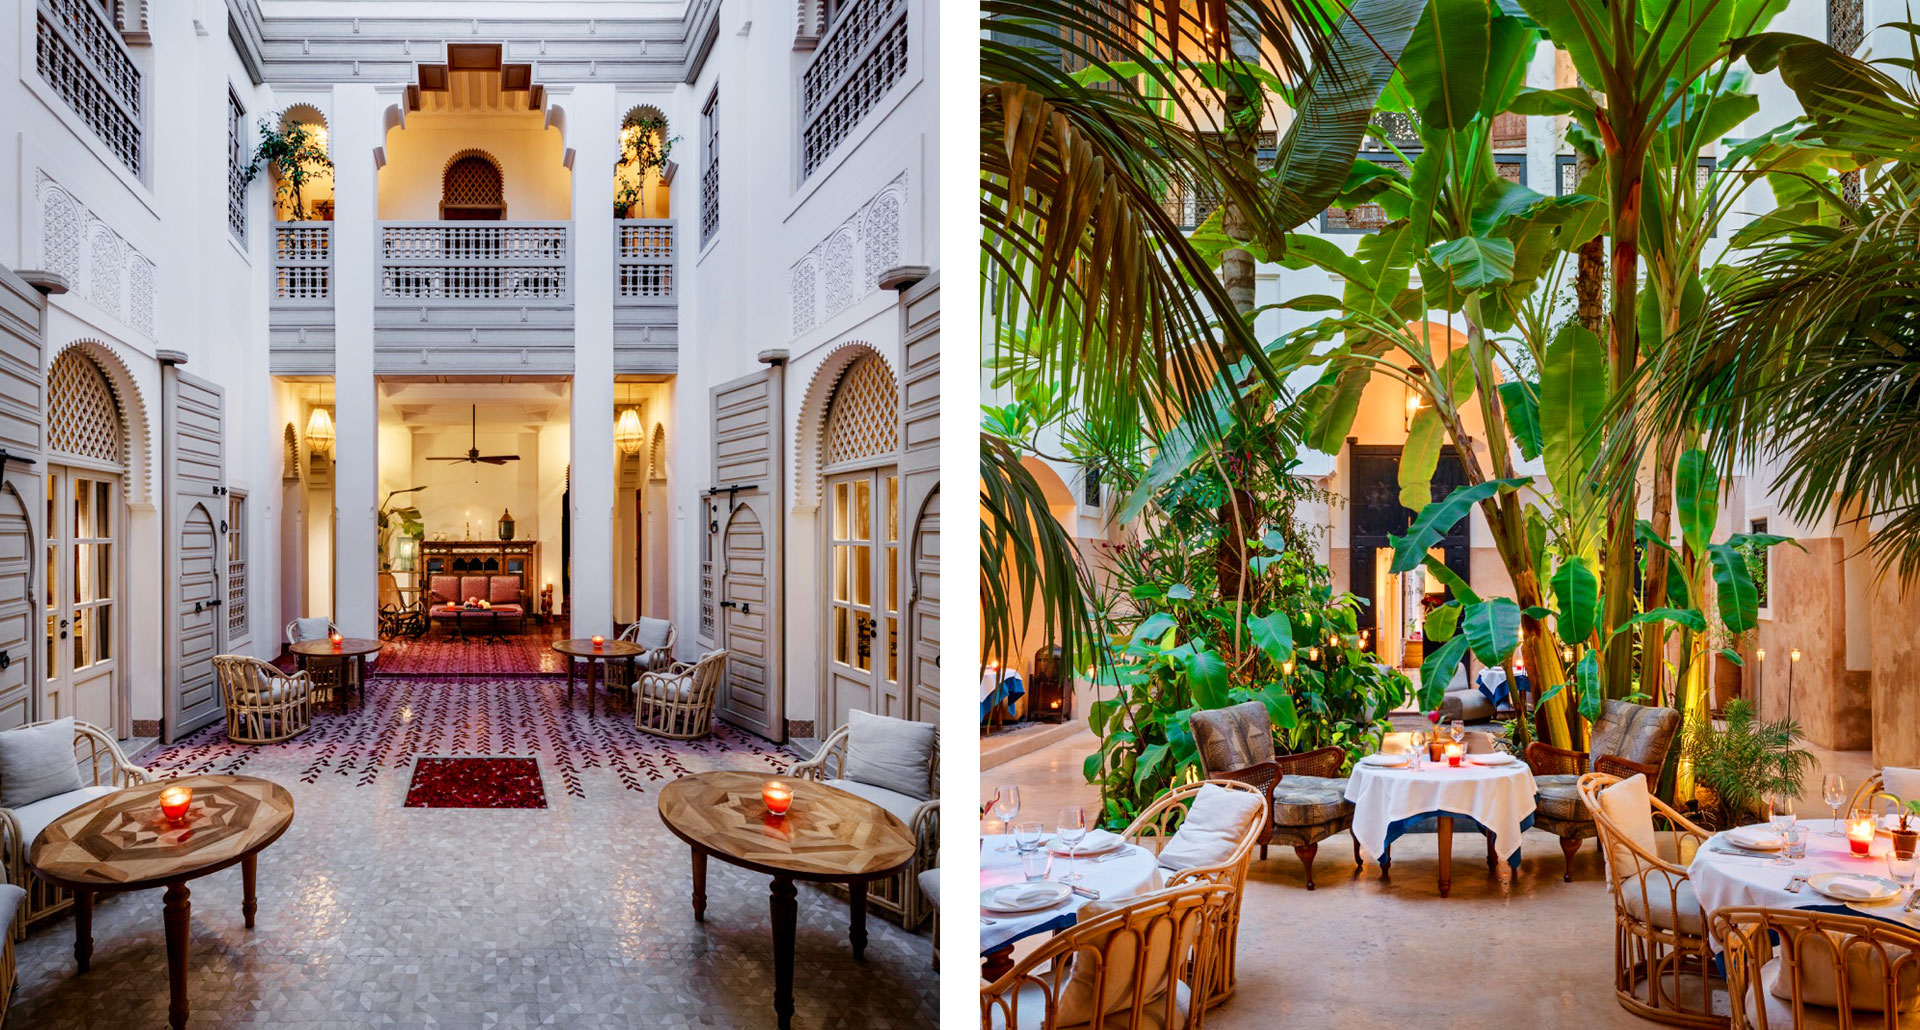 72 Riad Living - boutique hotel in Marrakech